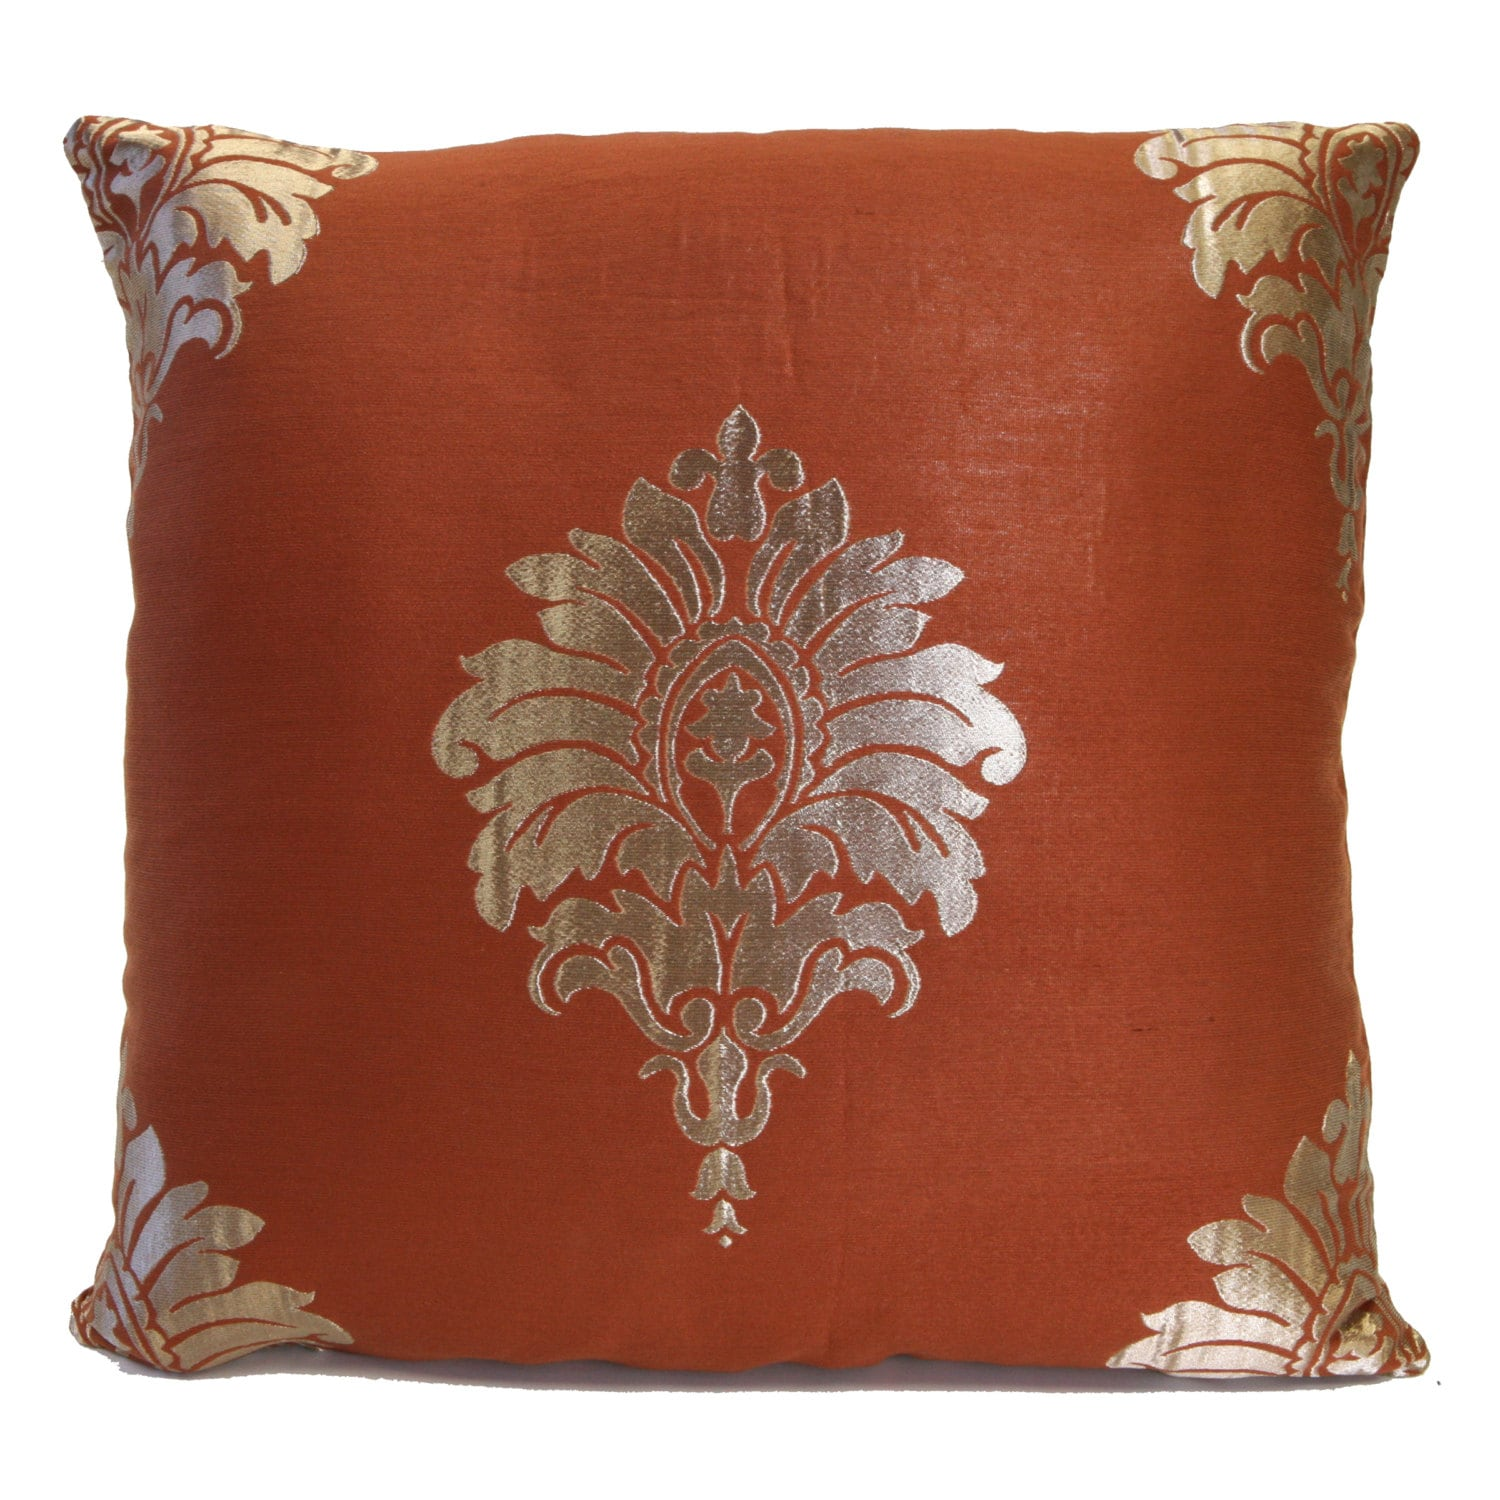 Throw Pillow Rust : Cinnamon Rust Pillow Throw Pillow Cover Decorative Pillow